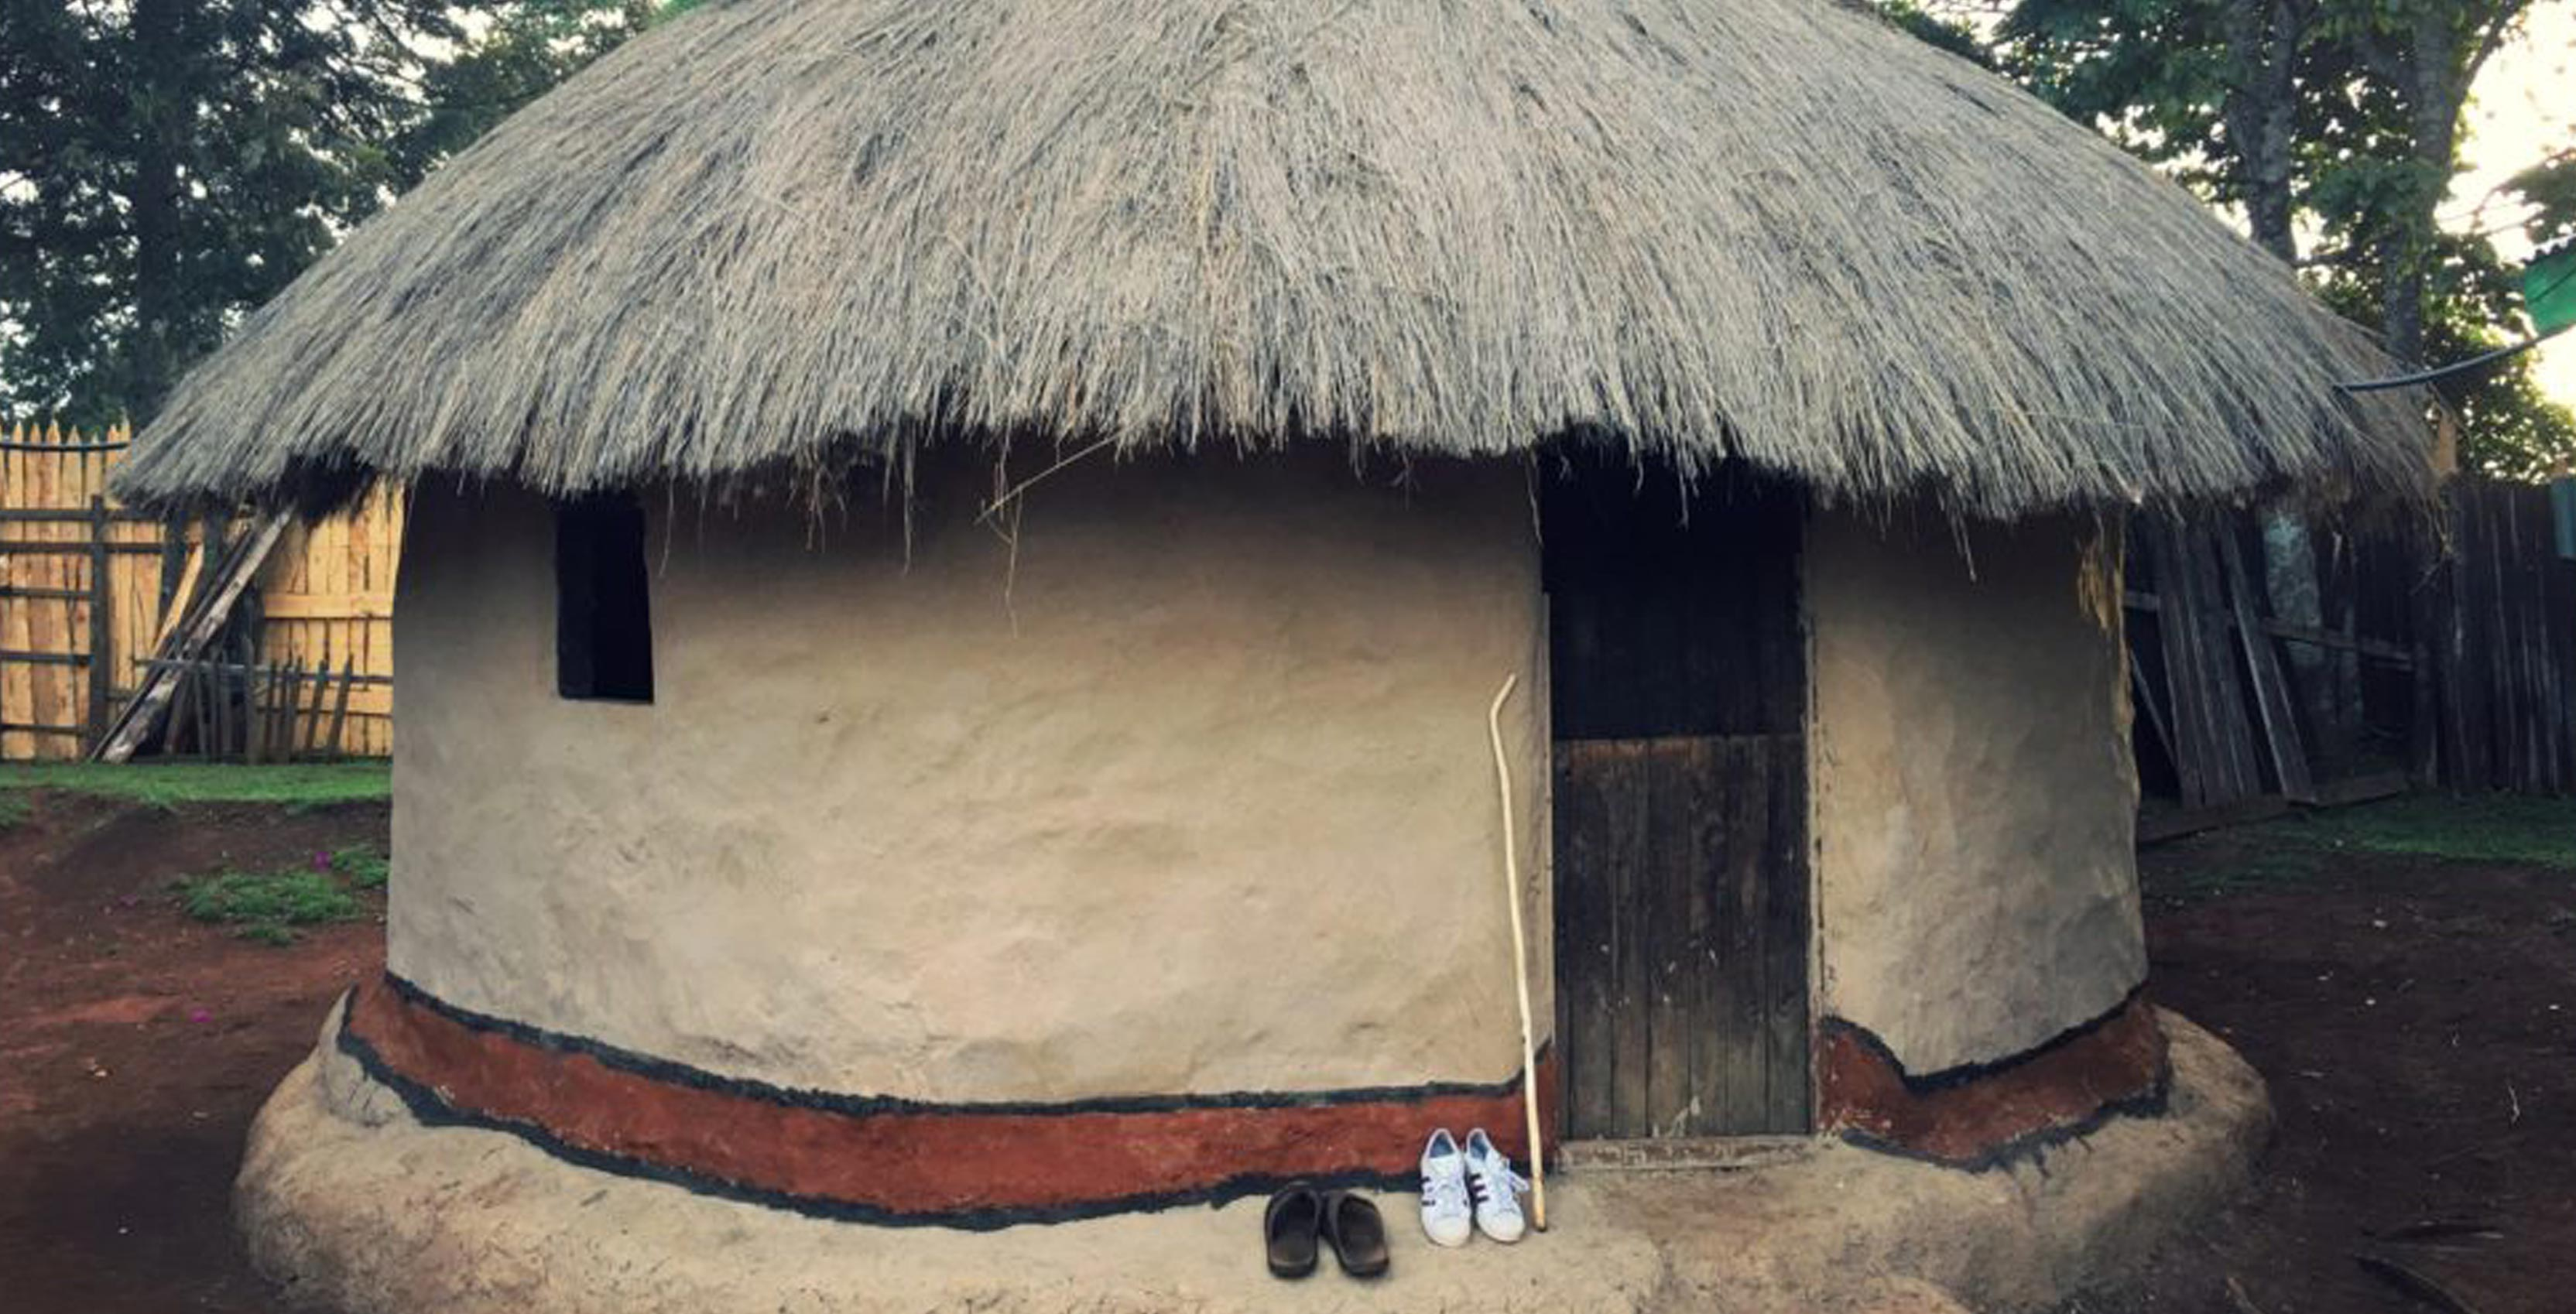 As of november 7th 2017 a mud house in the kenyan village of metipso will be the first in the world host to a full fledged digital broadcast